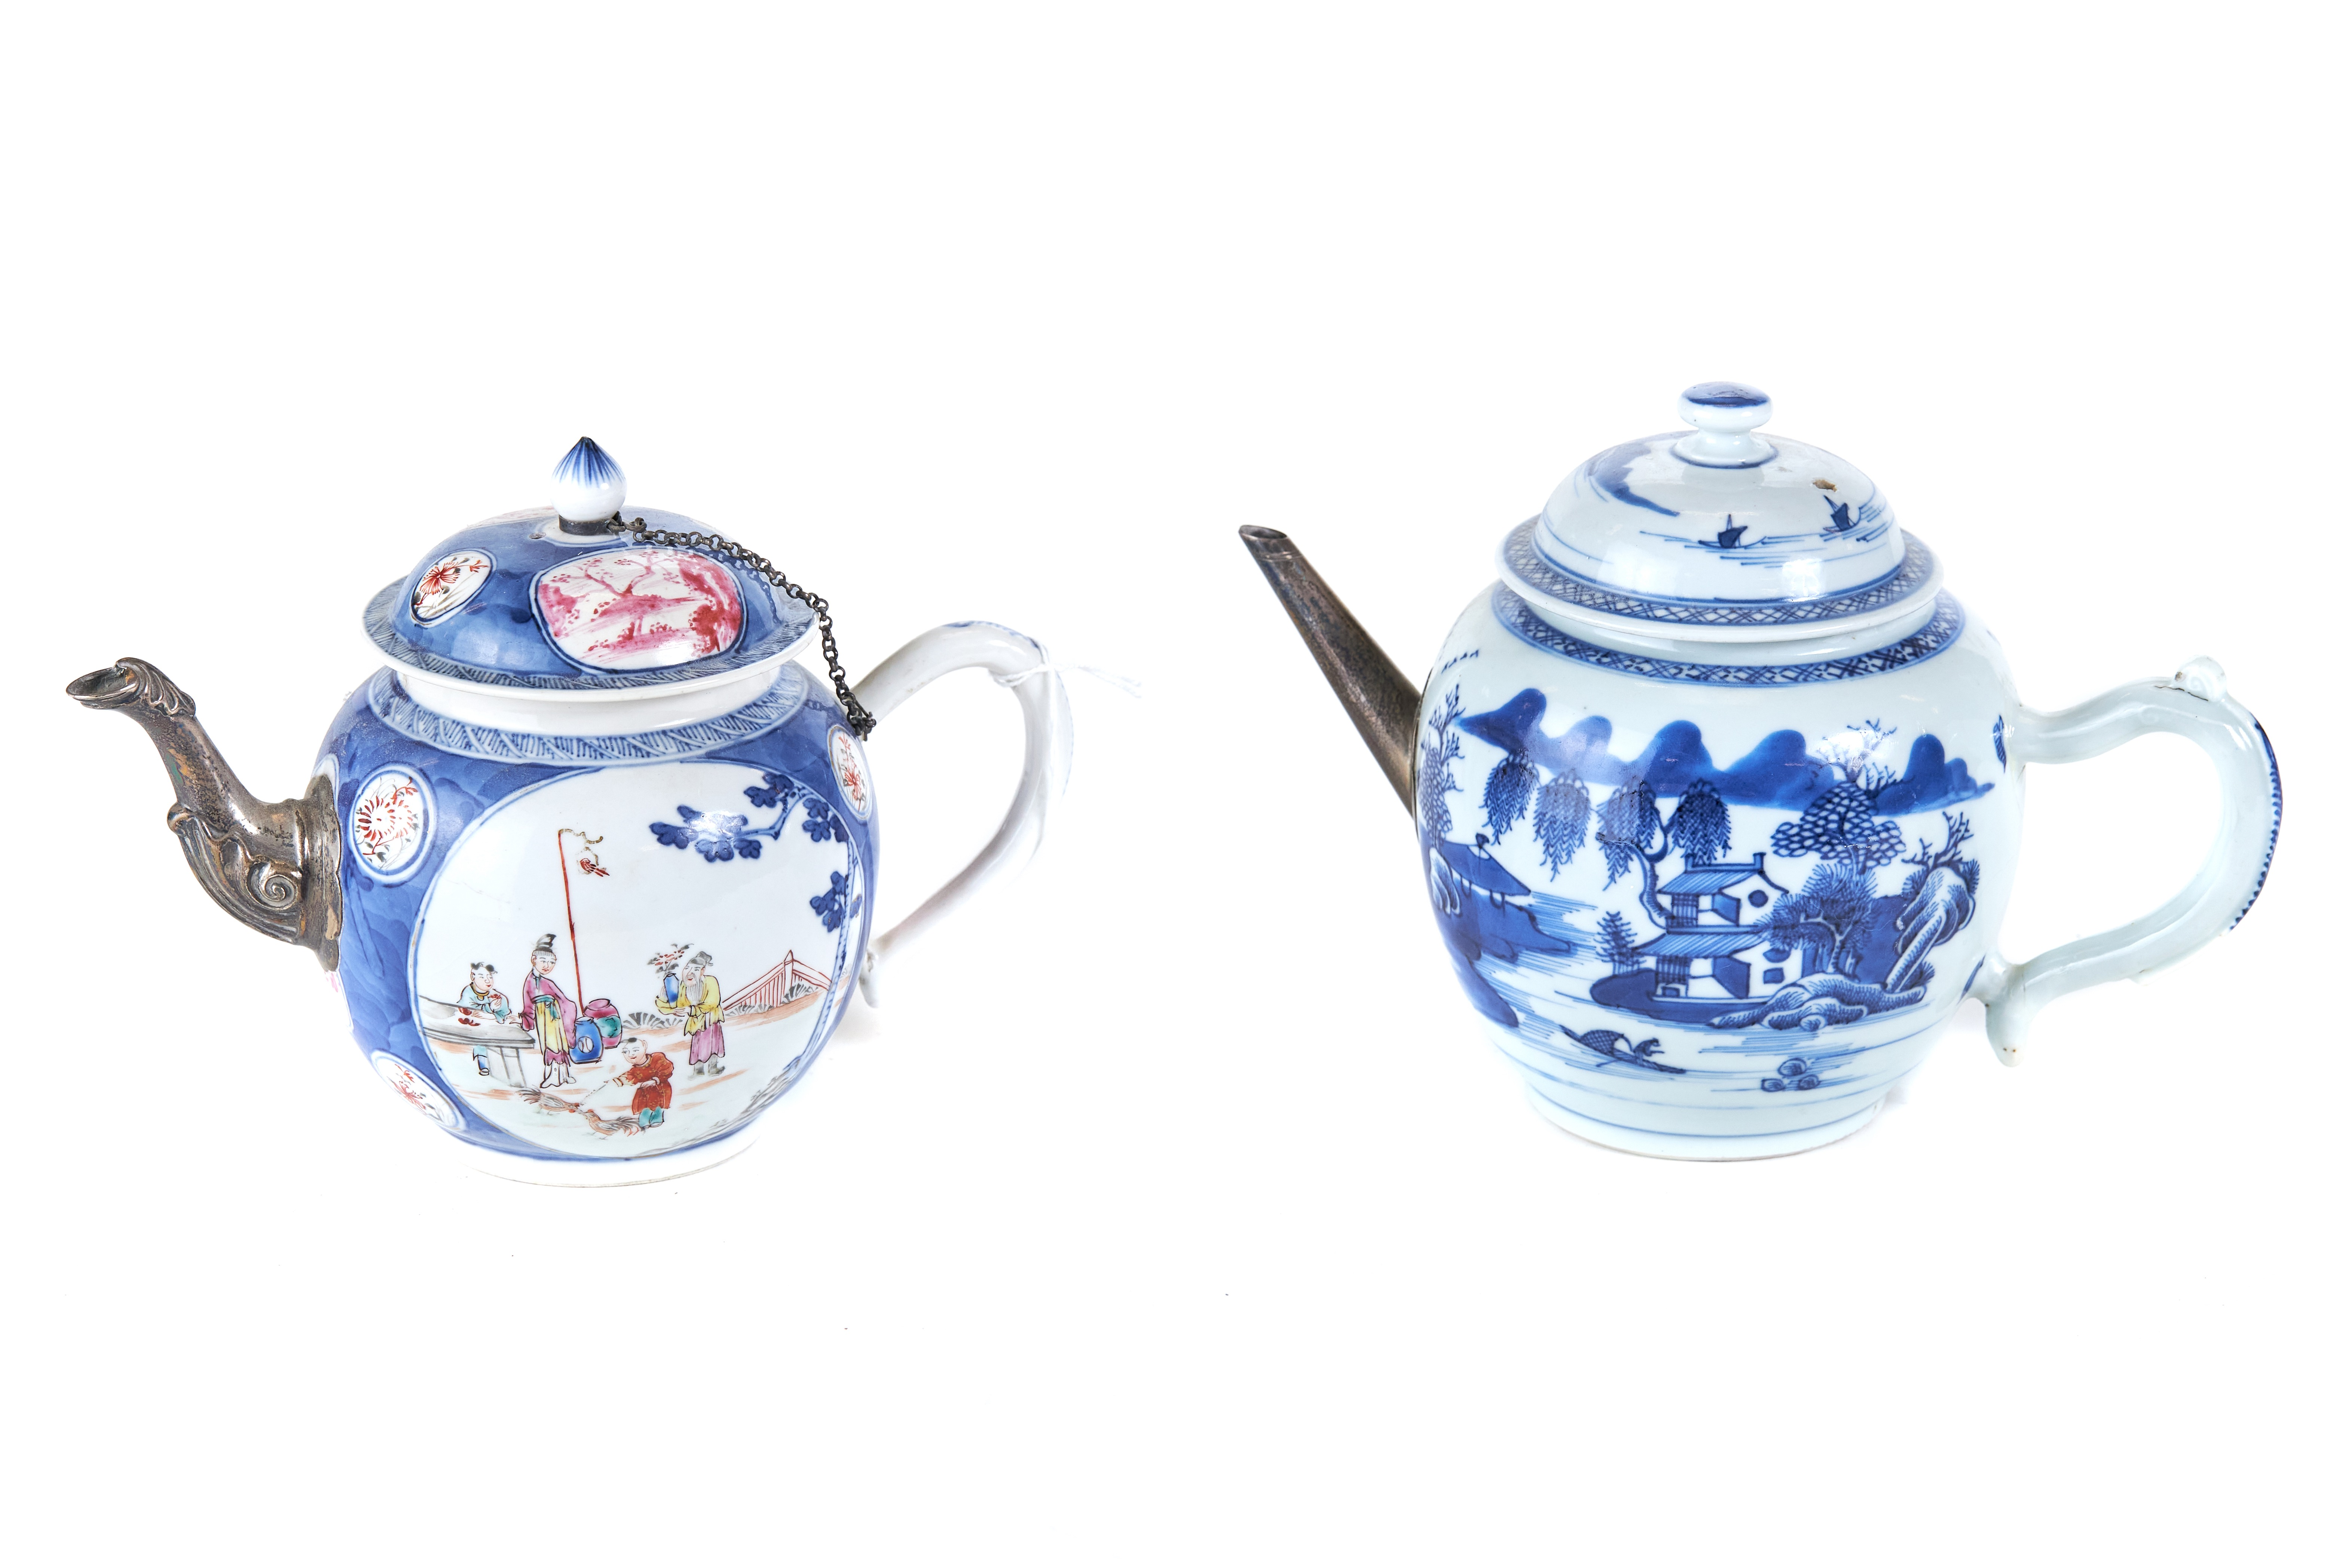 AN 18TH CENTURY CHINESE PORCELAIN TEAPOT AND COVER,